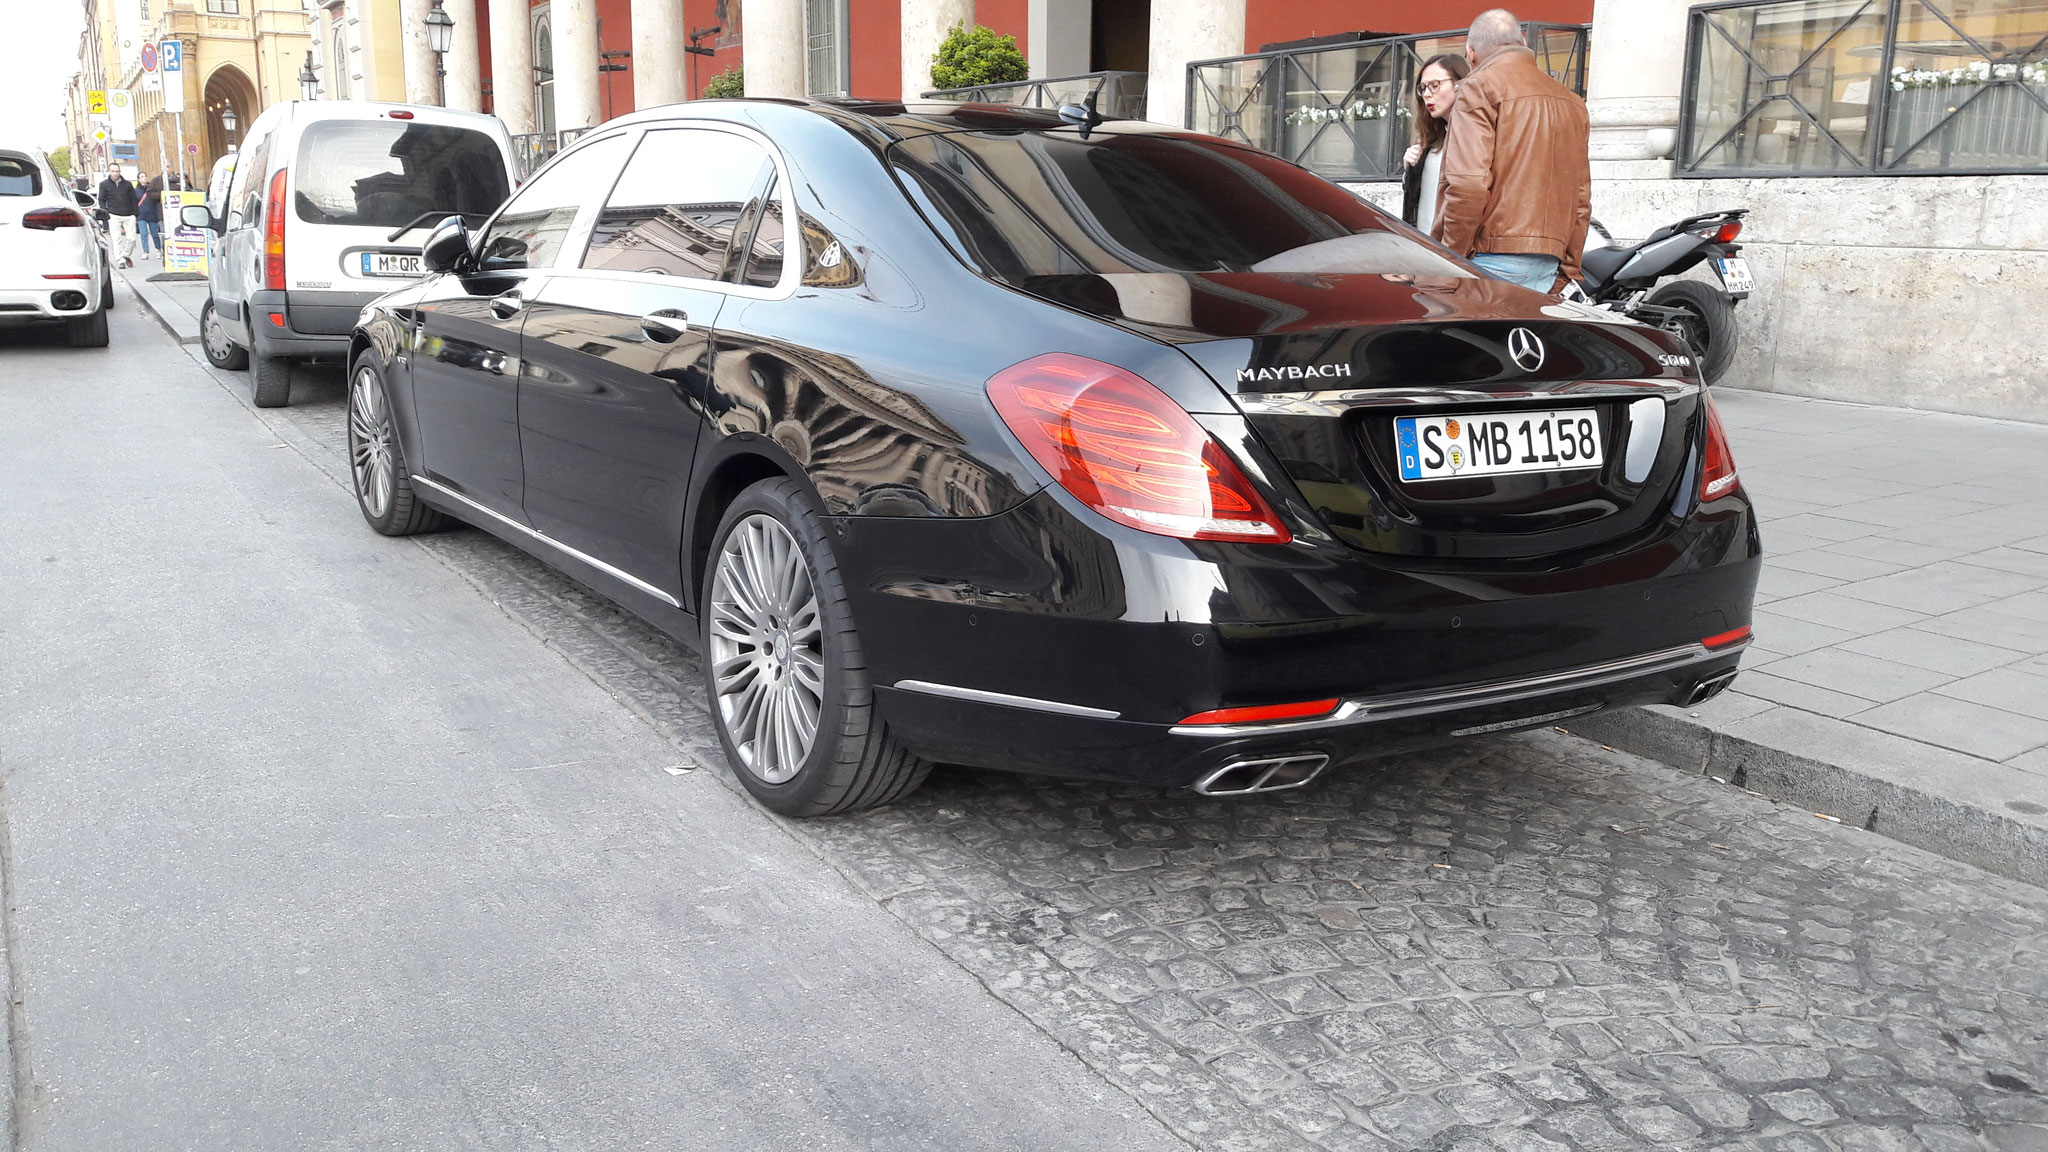 Mercedes Maybach S600 - S-MB-1158